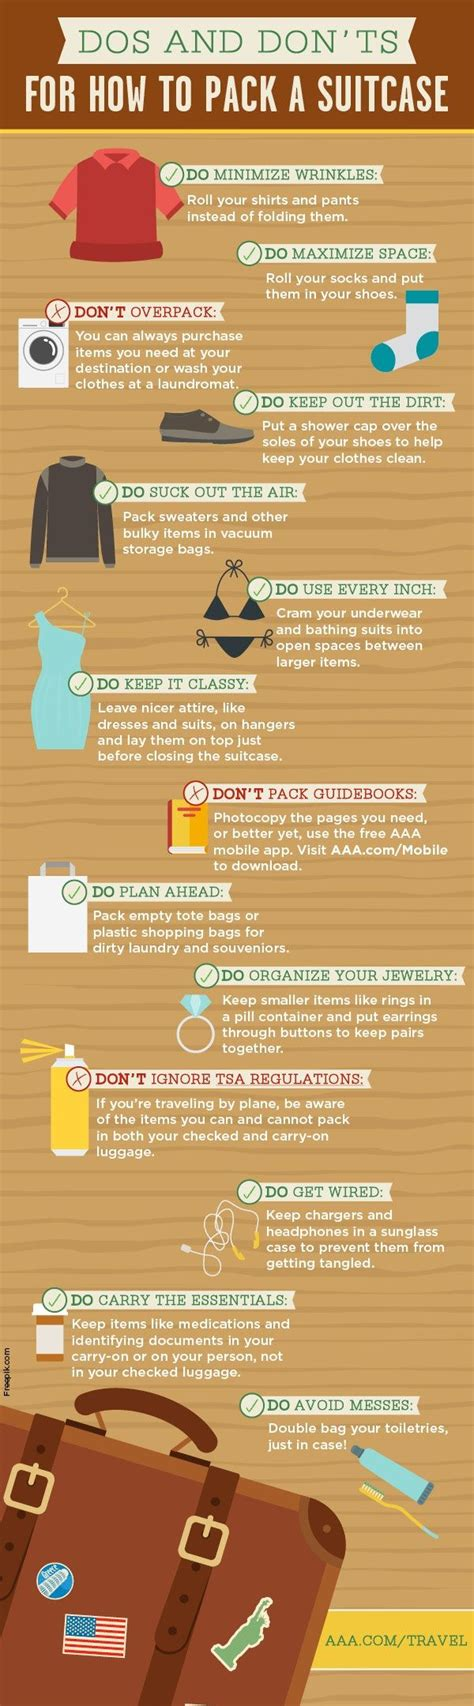 Best 25 Suitcase Packing Tips Ideas On Pinterest